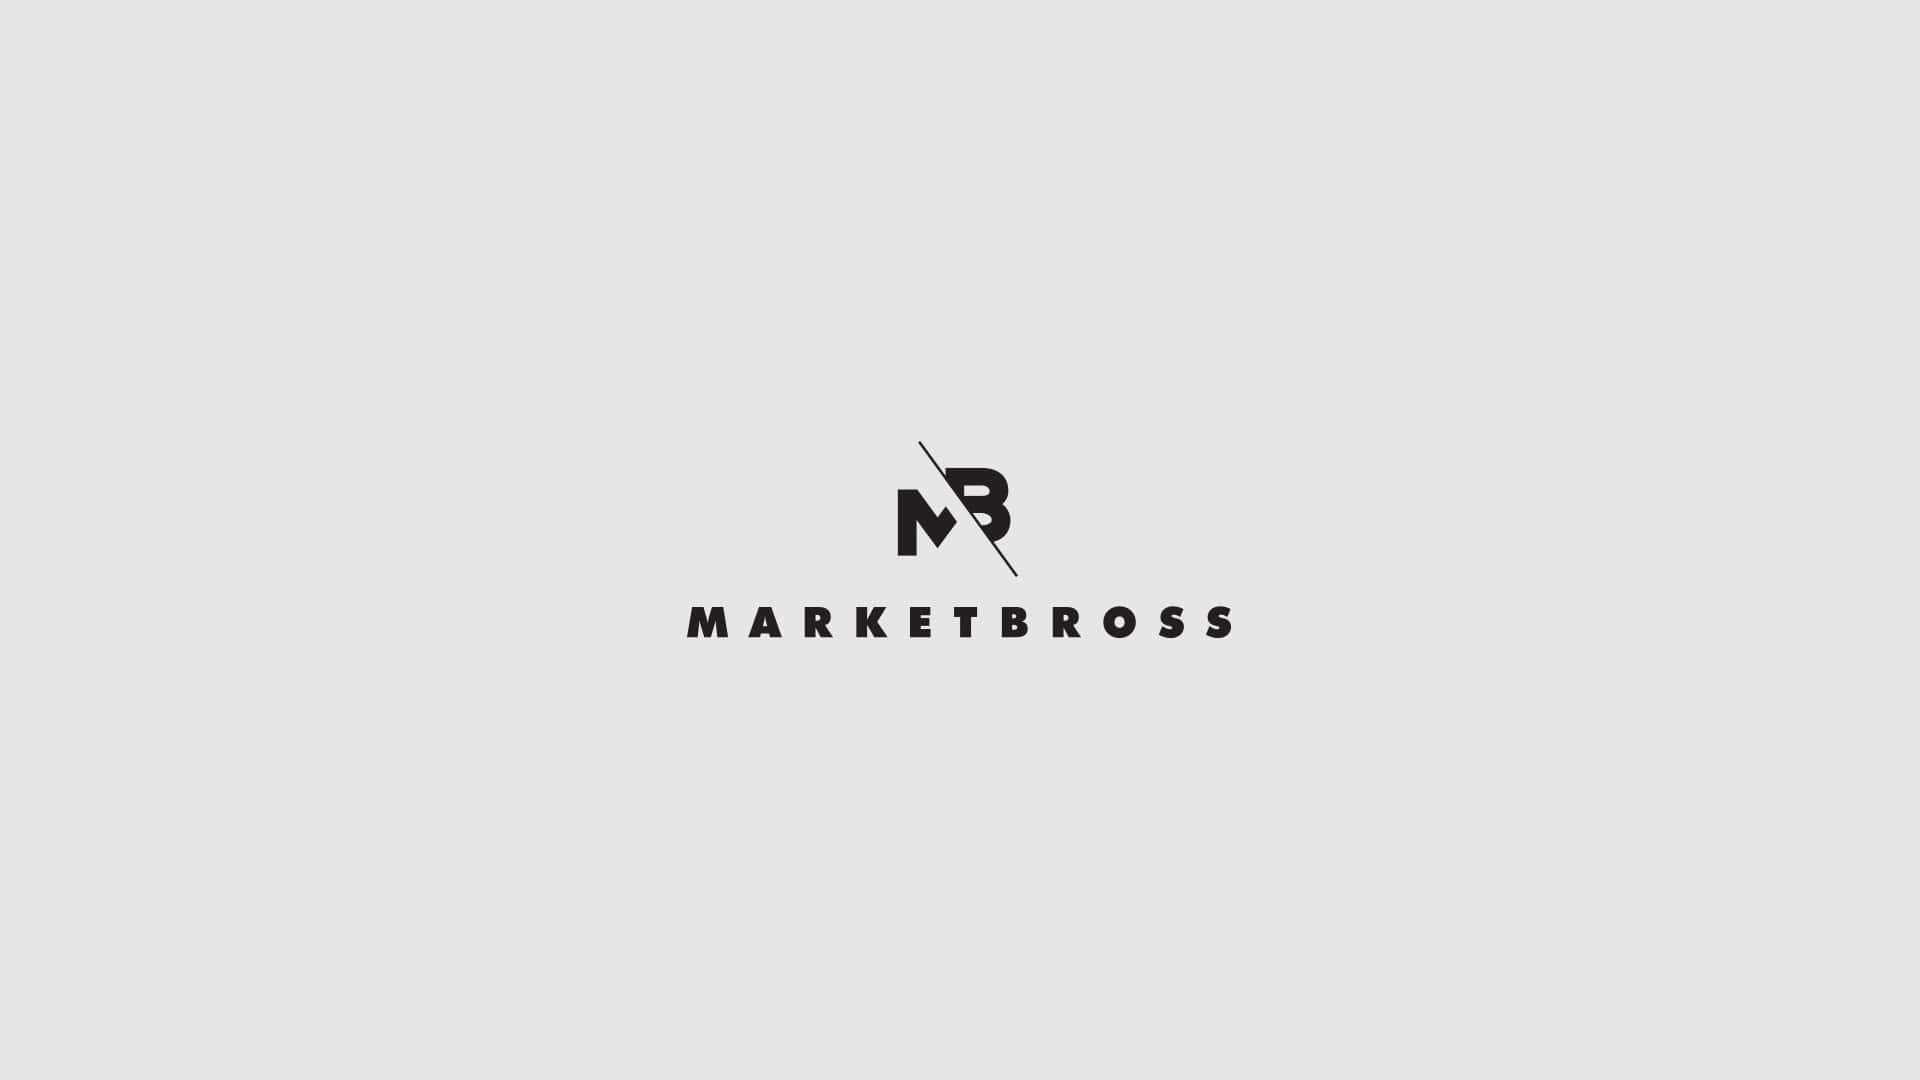 marketbross-min